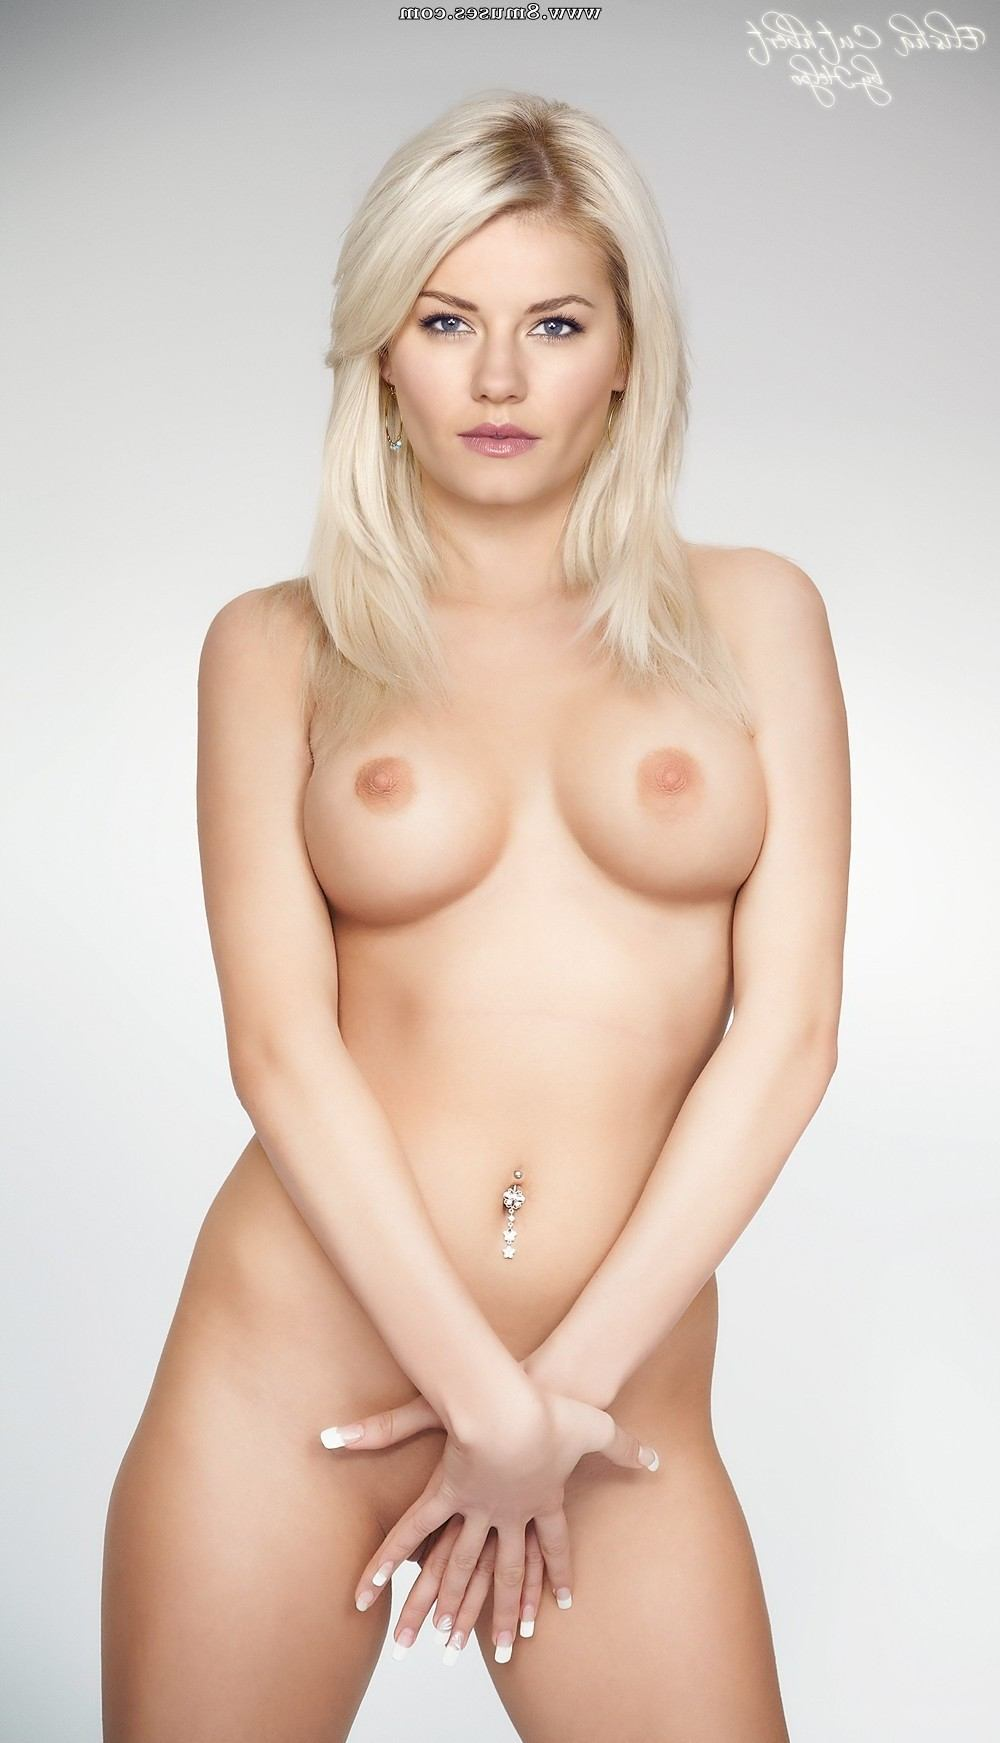 Fake-Celebrities-Sex-Pictures/Elisha-Cuthbert Elisha_Cuthbert__8muses_-_Sex_and_Porn_Comics_304.jpg